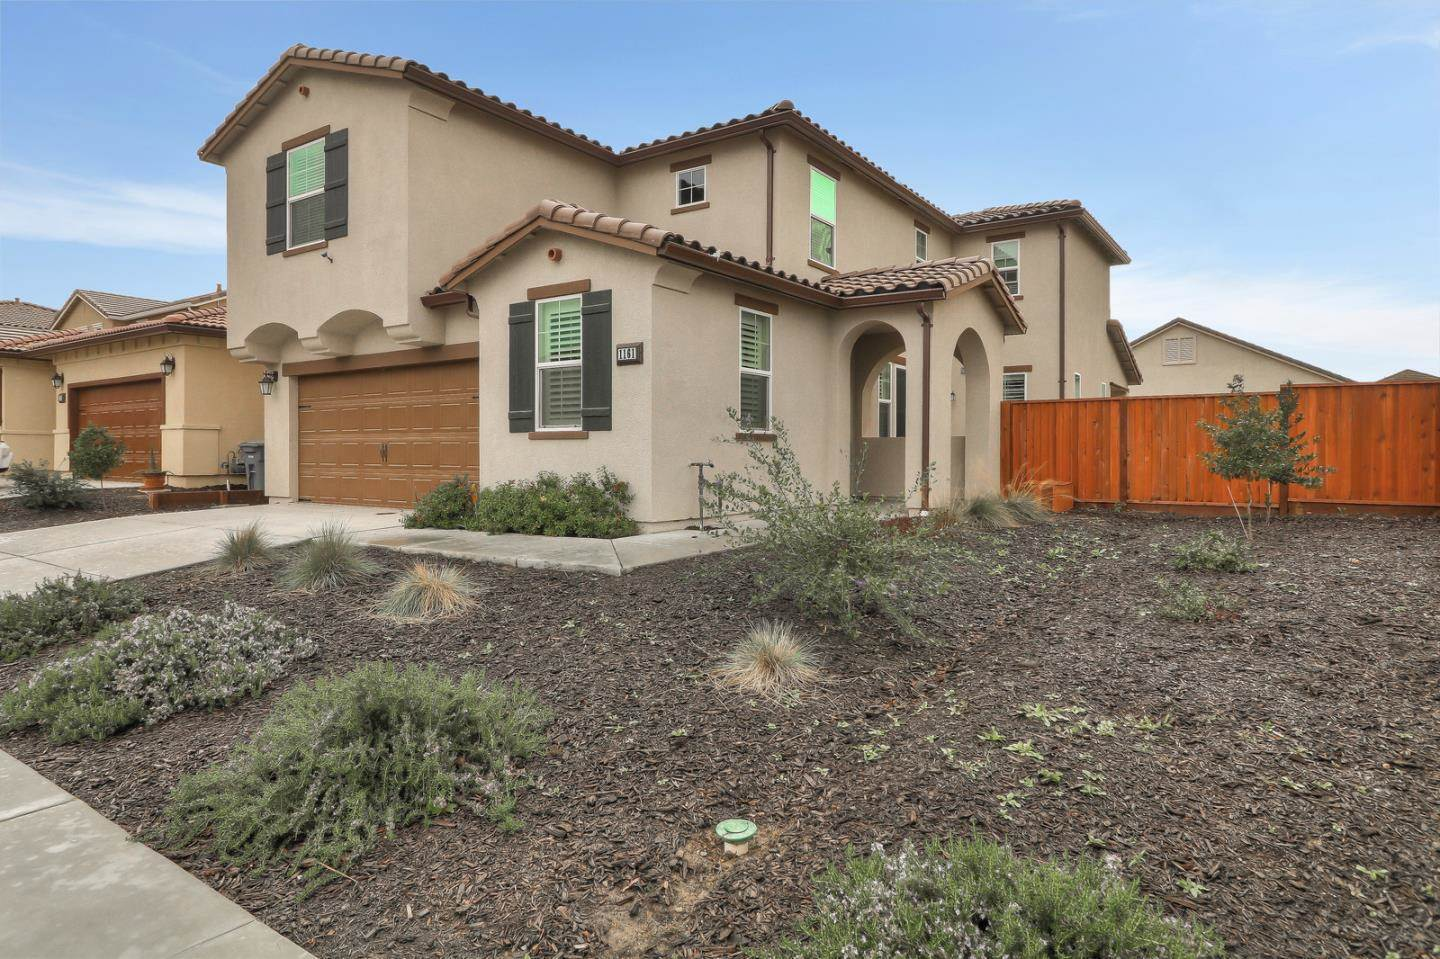 One of Hollister 4 Bedroom Homes for Sale at 1161 Cabrillo Dr.